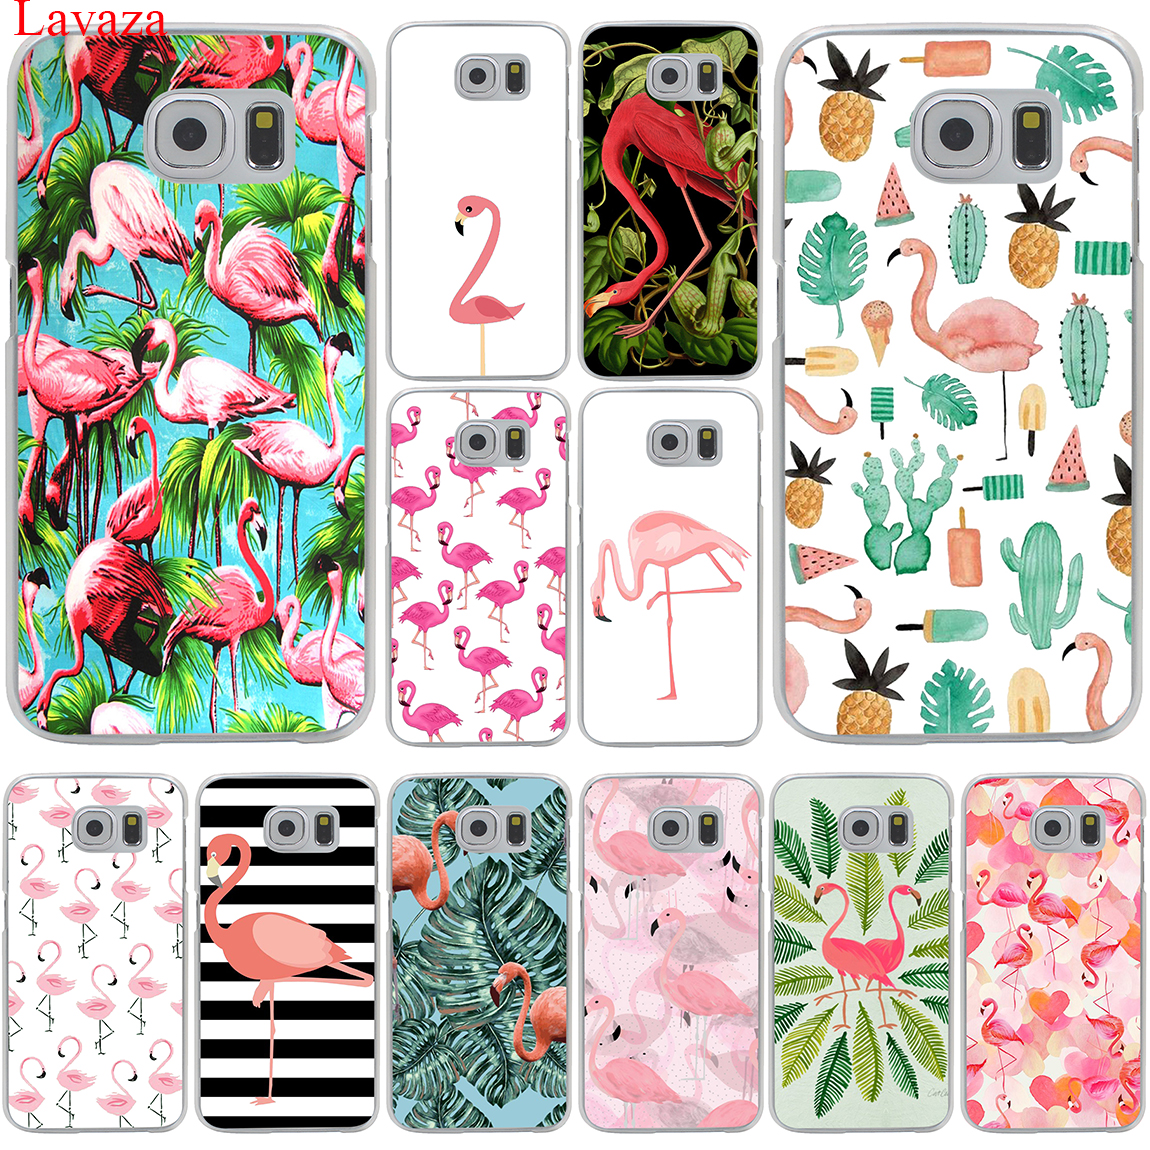 Lips Flamingo Flamingos Themed Pool Party Hard Transparent for Samsung Galaxy S6 S7 S8 Edge Plus S5 S4 S3 & Mini Case Cover